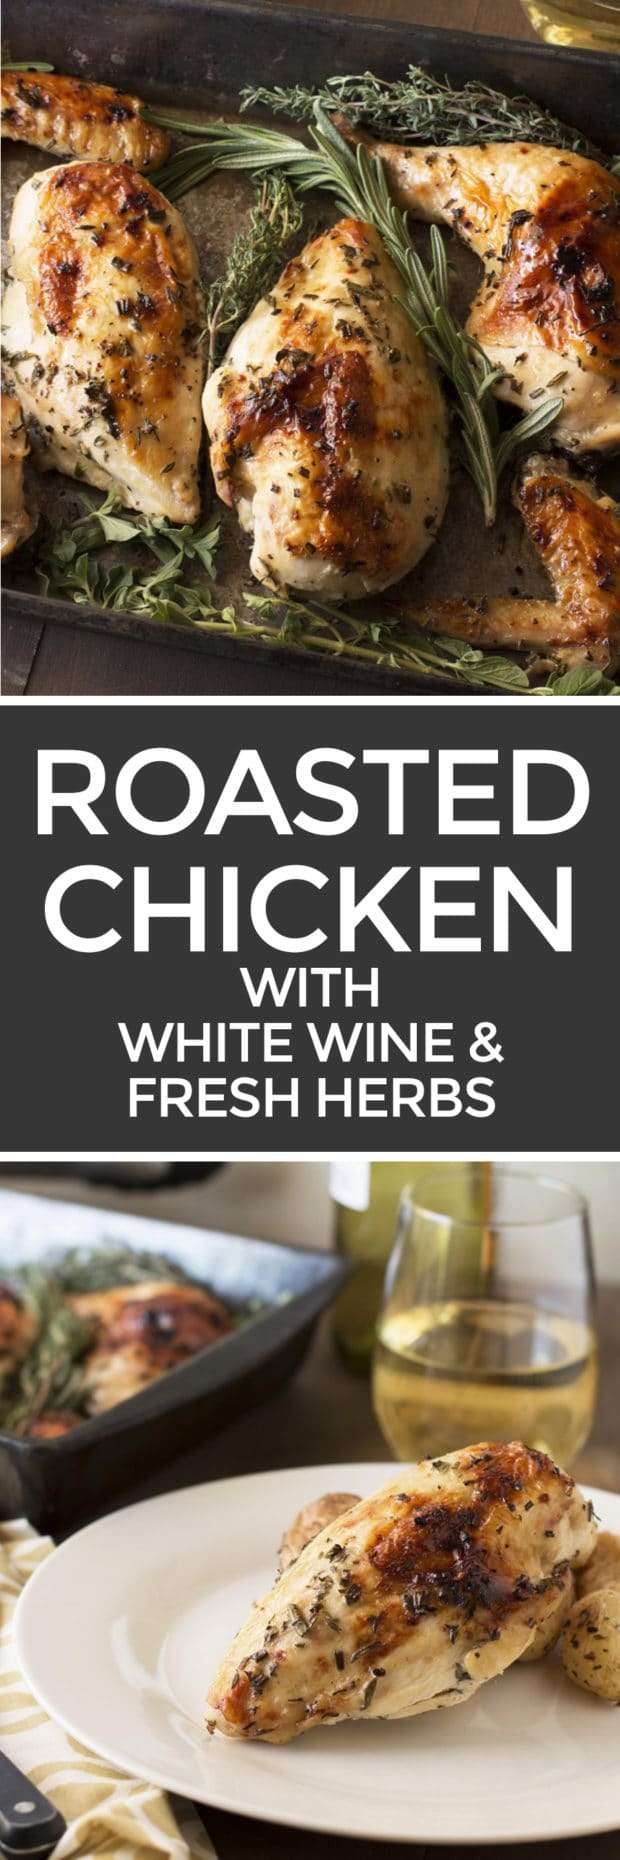 Roasted Chicken With White Wine Amp Fresh Herbs Cake N Knife